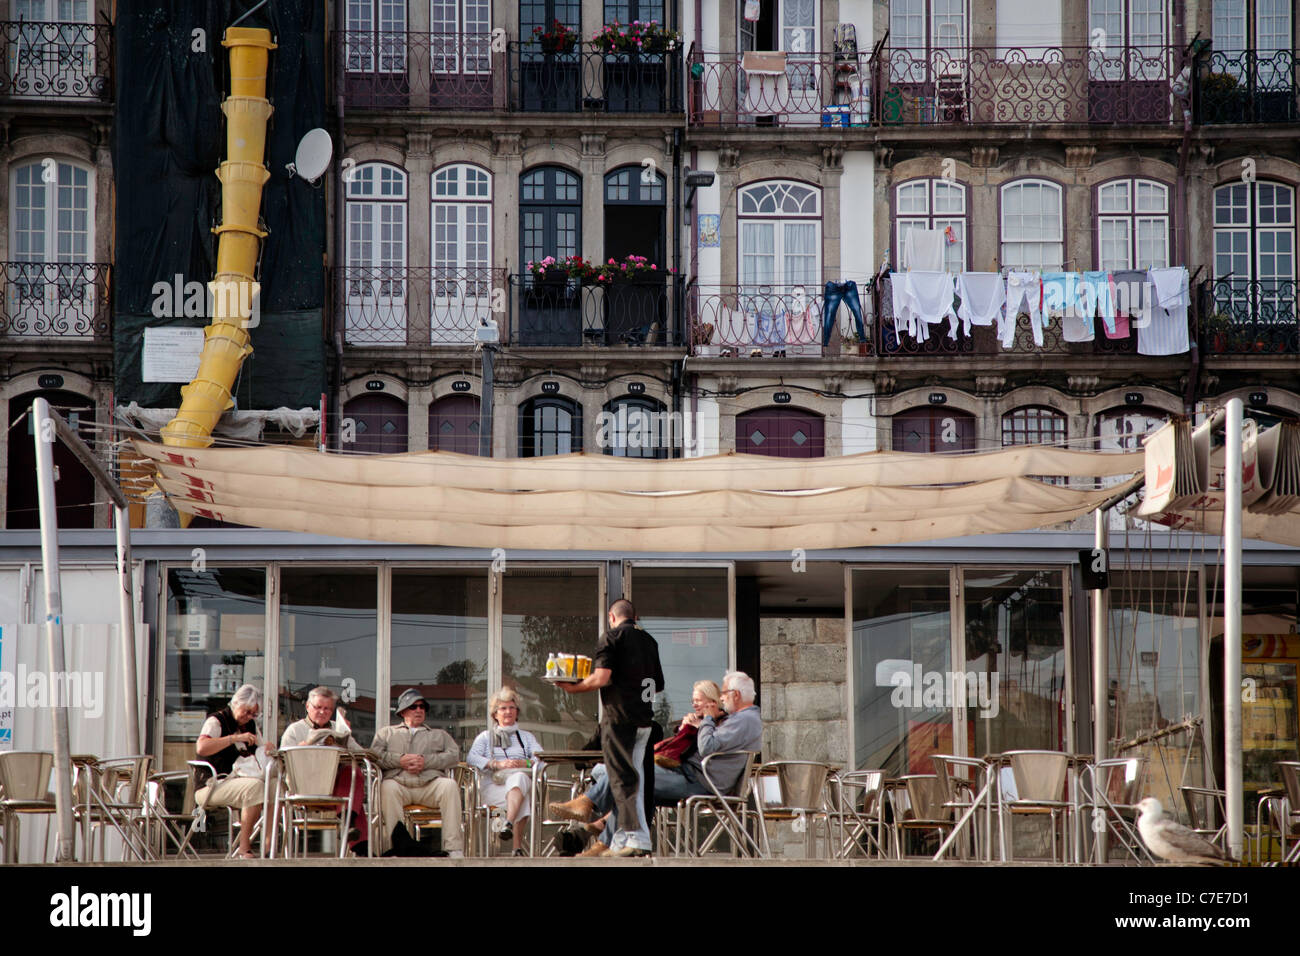 Visitors having a drink at a quayside restaurant, with traditional buildings, Porto - Stock Image